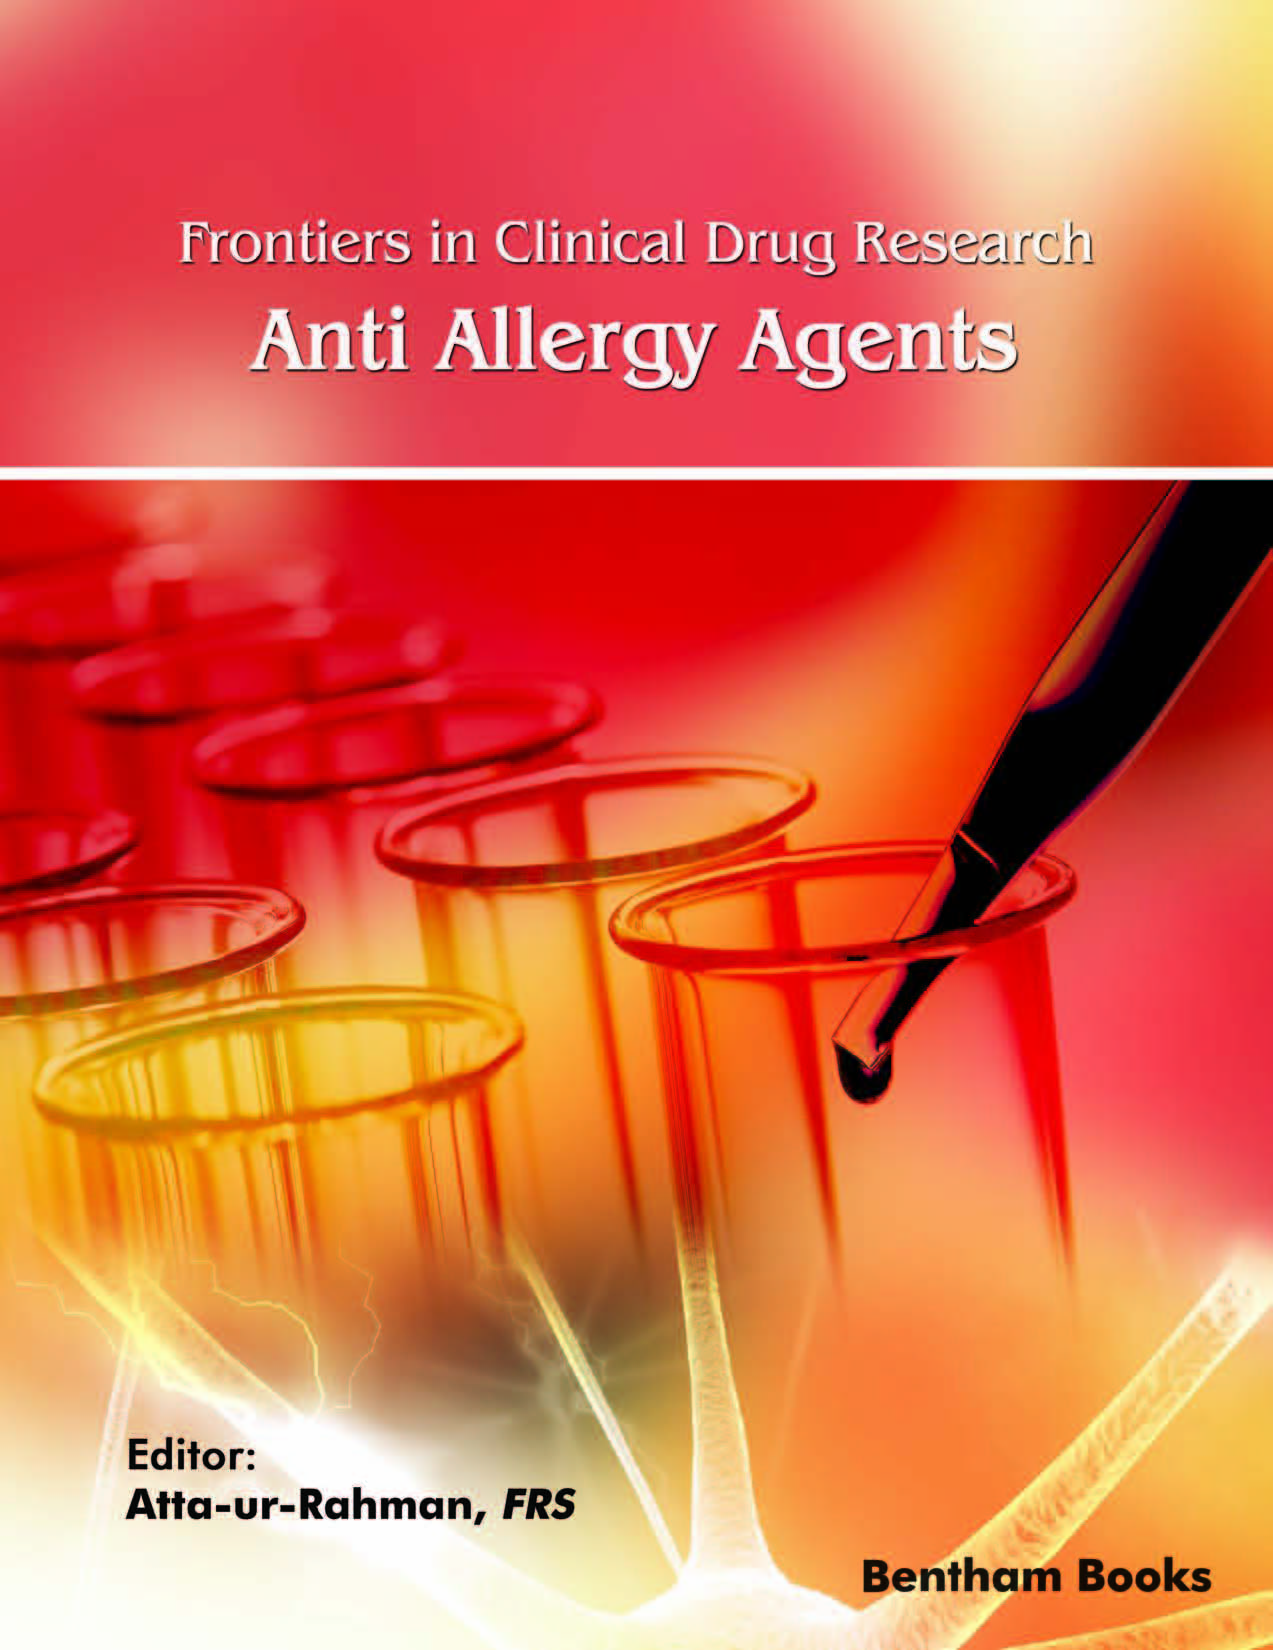 Frontiers in Clinical Drug Research – Anti Allergy Agents